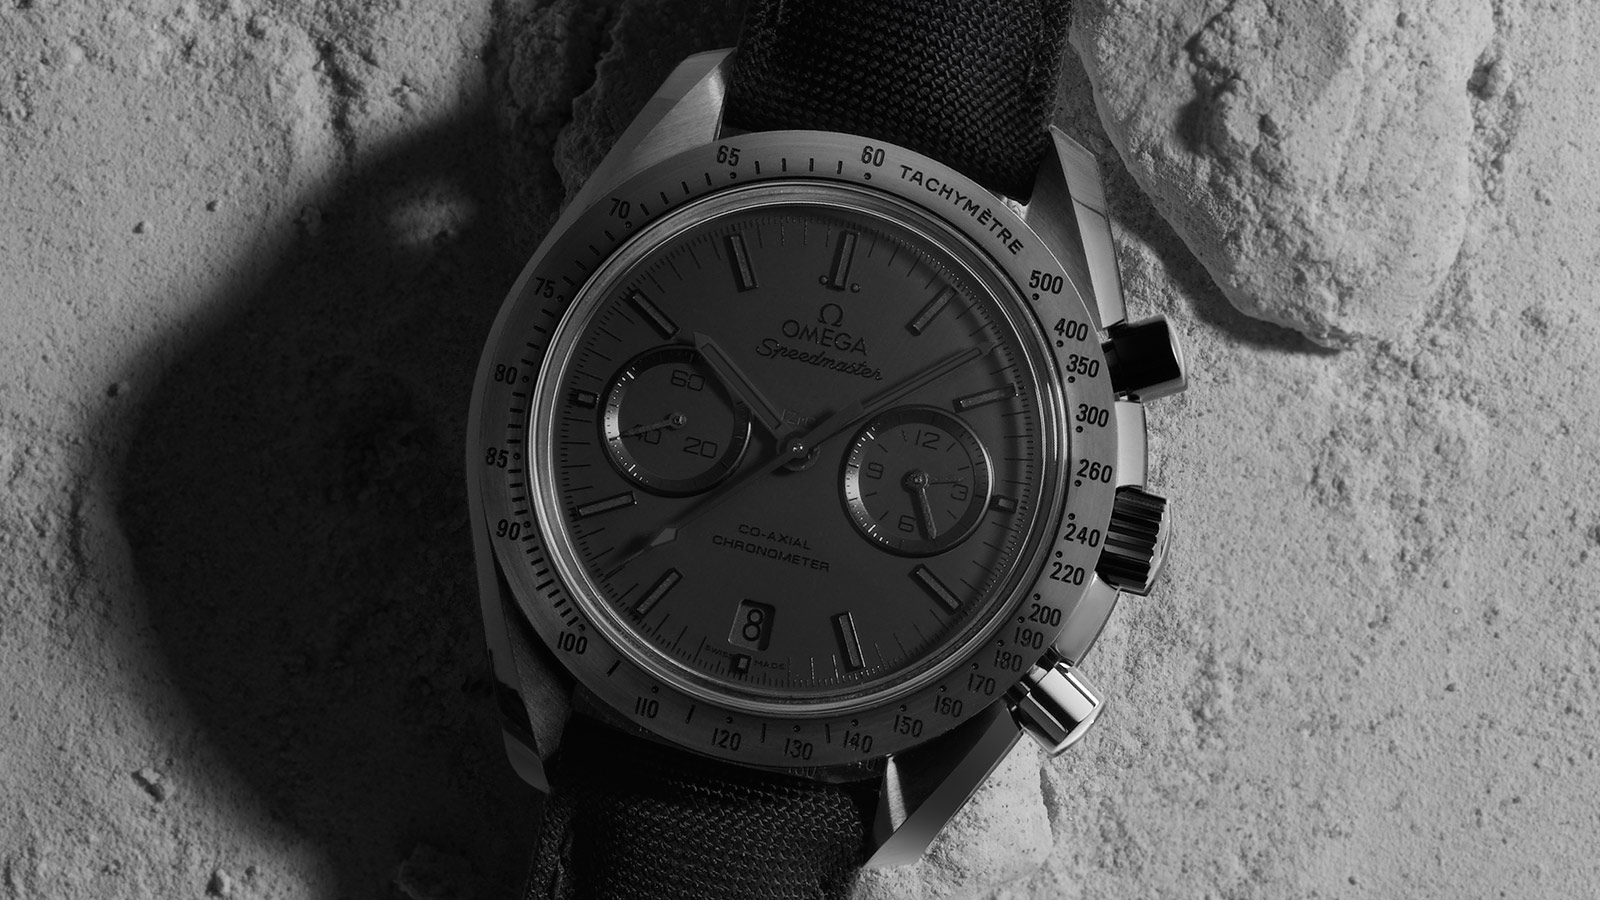 Speedmaster ムーンウォッチ Moonwatch Omega Co‑Axial Chronograph 44.25 mm - 311.92.44.51.01.005 - ビュー 1